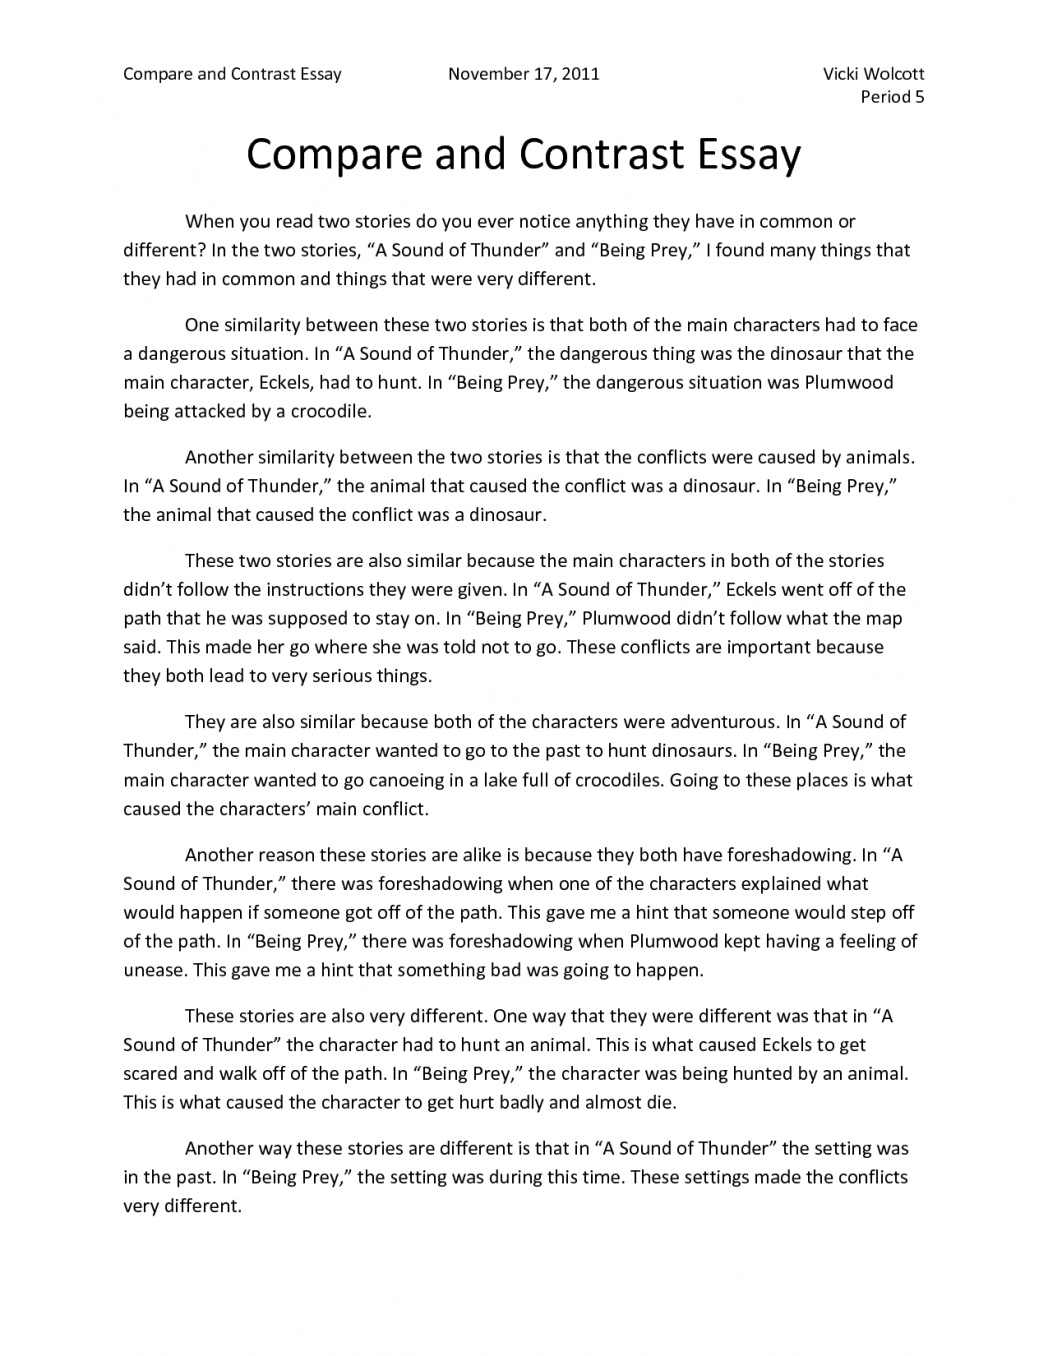 003 Conclusion For Compare And Contrastsay Writing Comparison Argumentative Research Paper Example Contrast Science Pdf Examples Outline Mla Apa History Scientific 1048x1356 Striking How To Write Essay A Good Introduction Essays Full